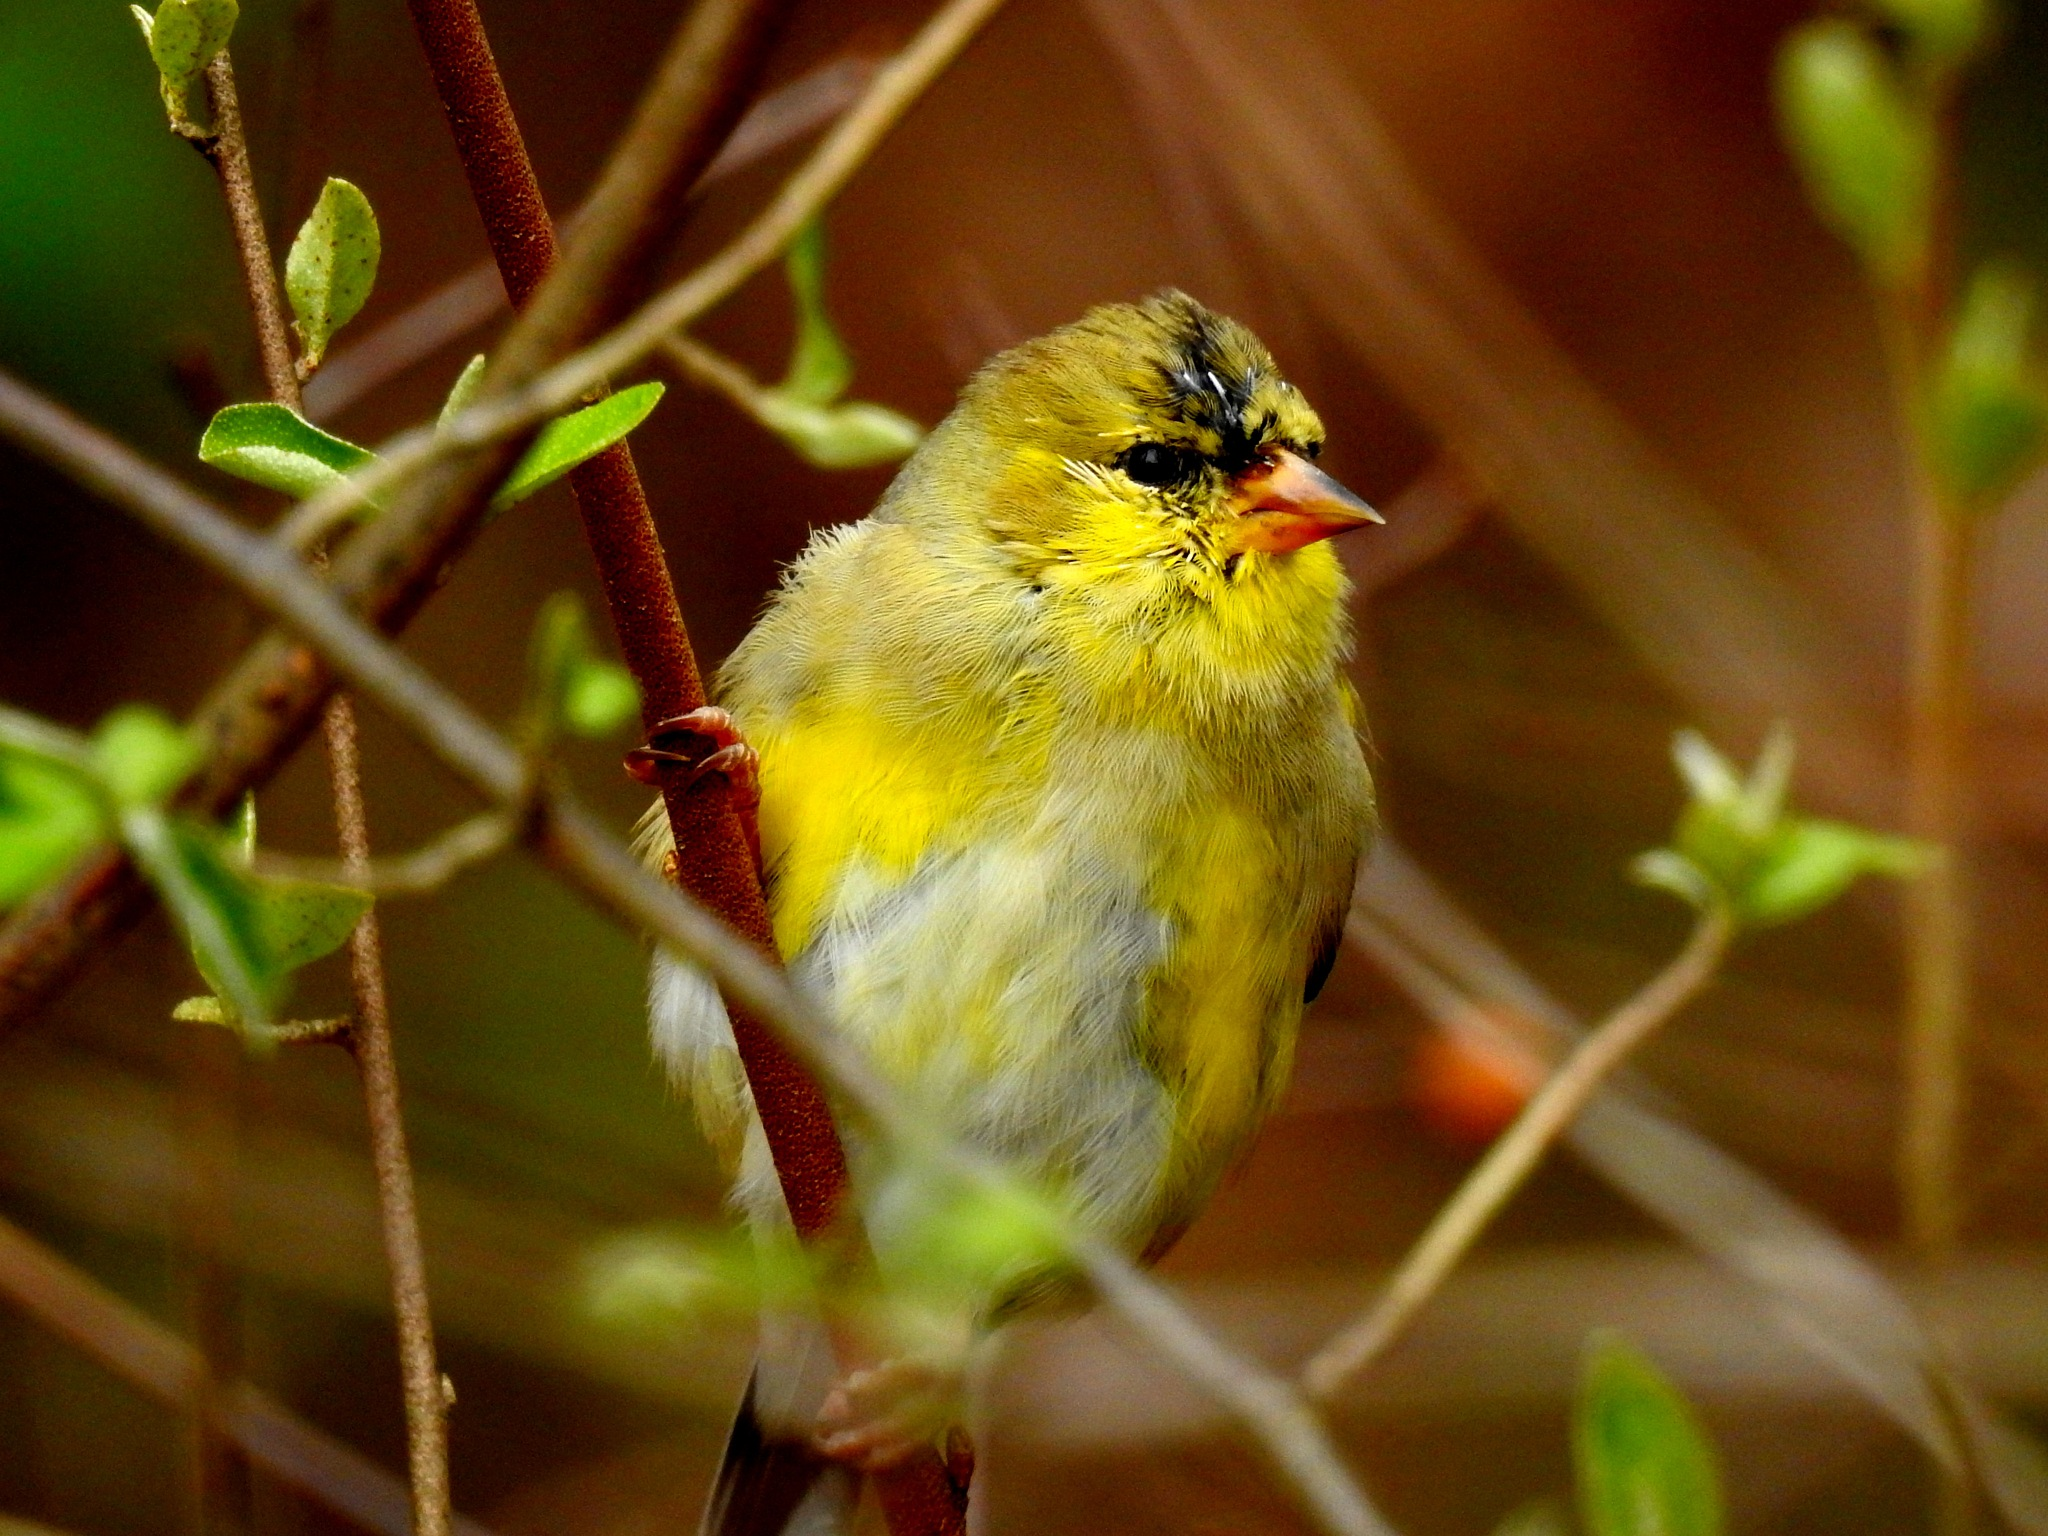 Goldfinch by Patty Stockton